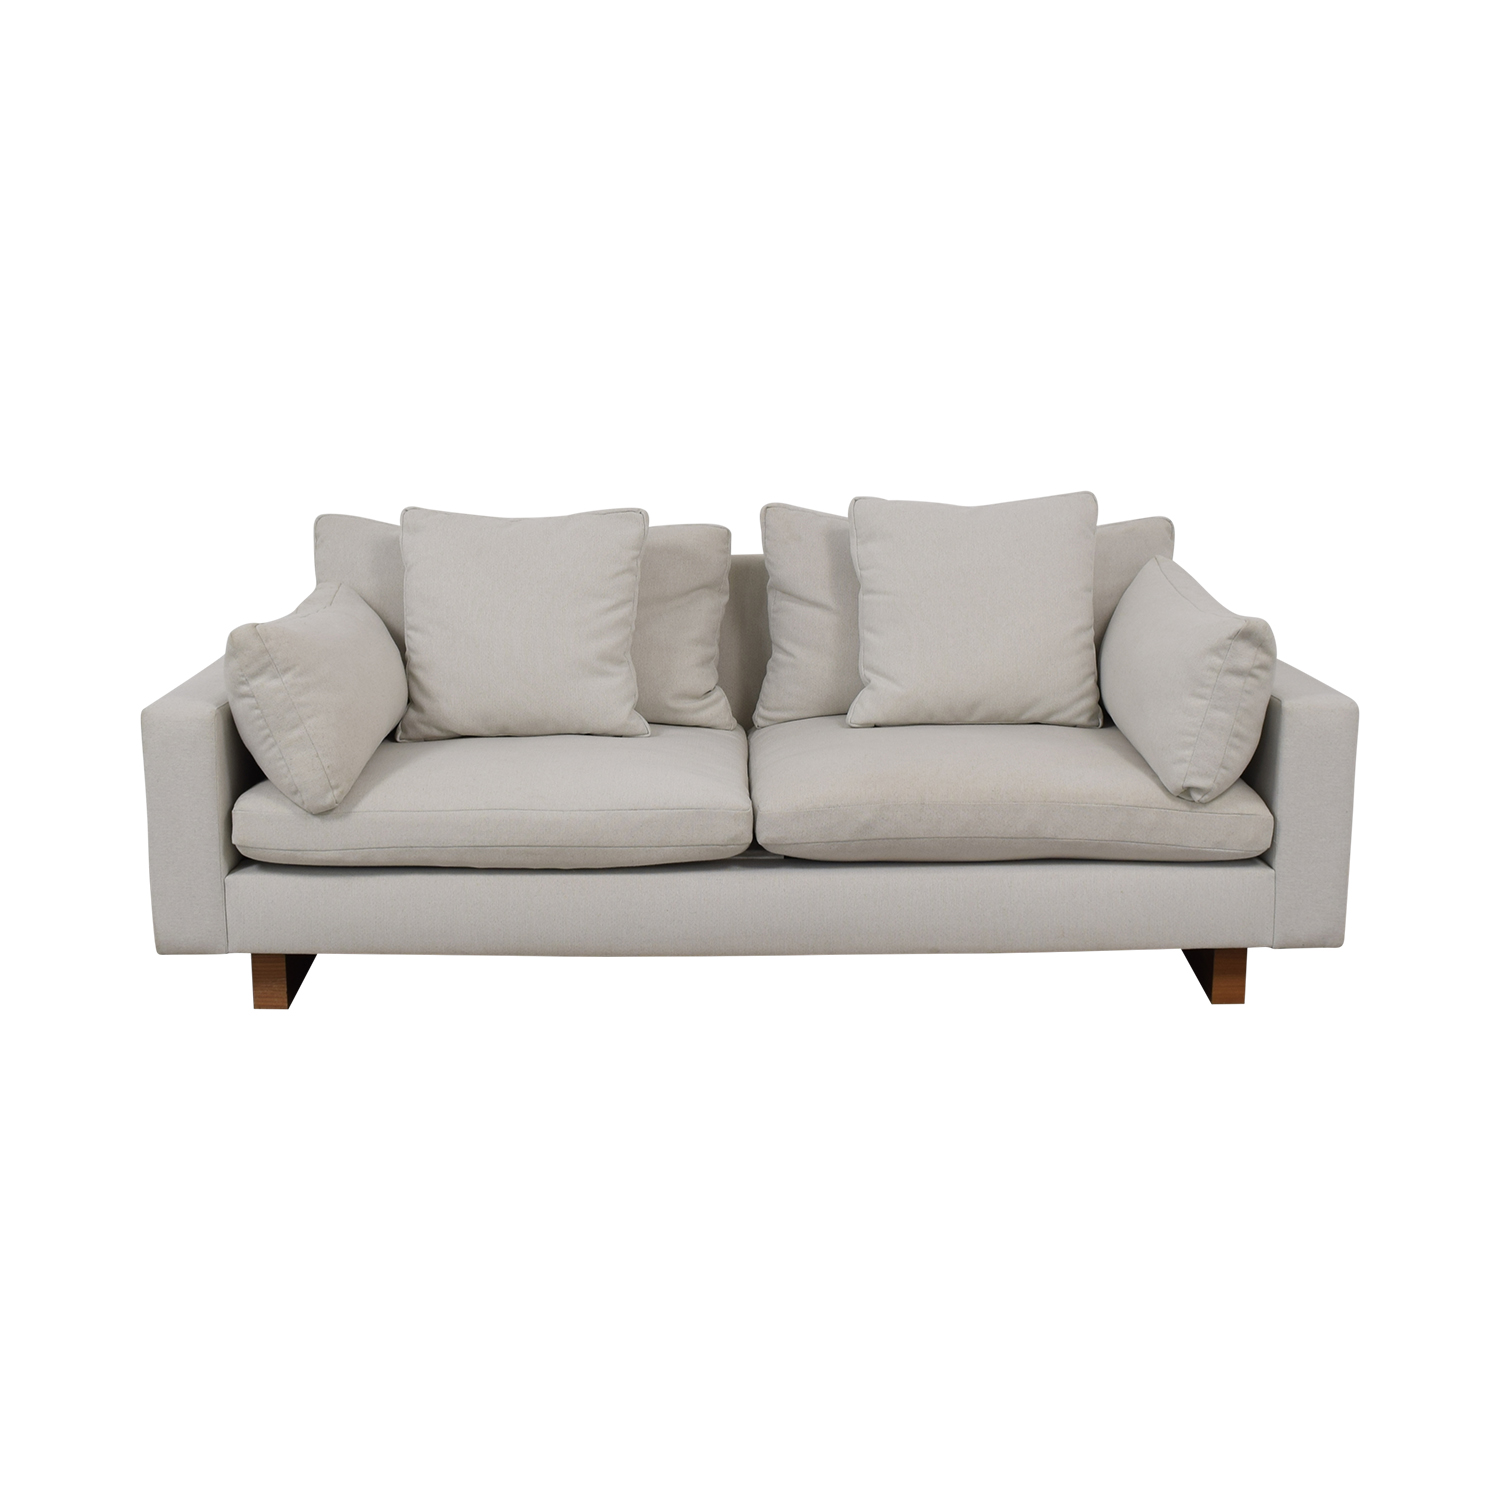 West Elm West Elm Harmony Down-Filled Sofa Classic Sofas